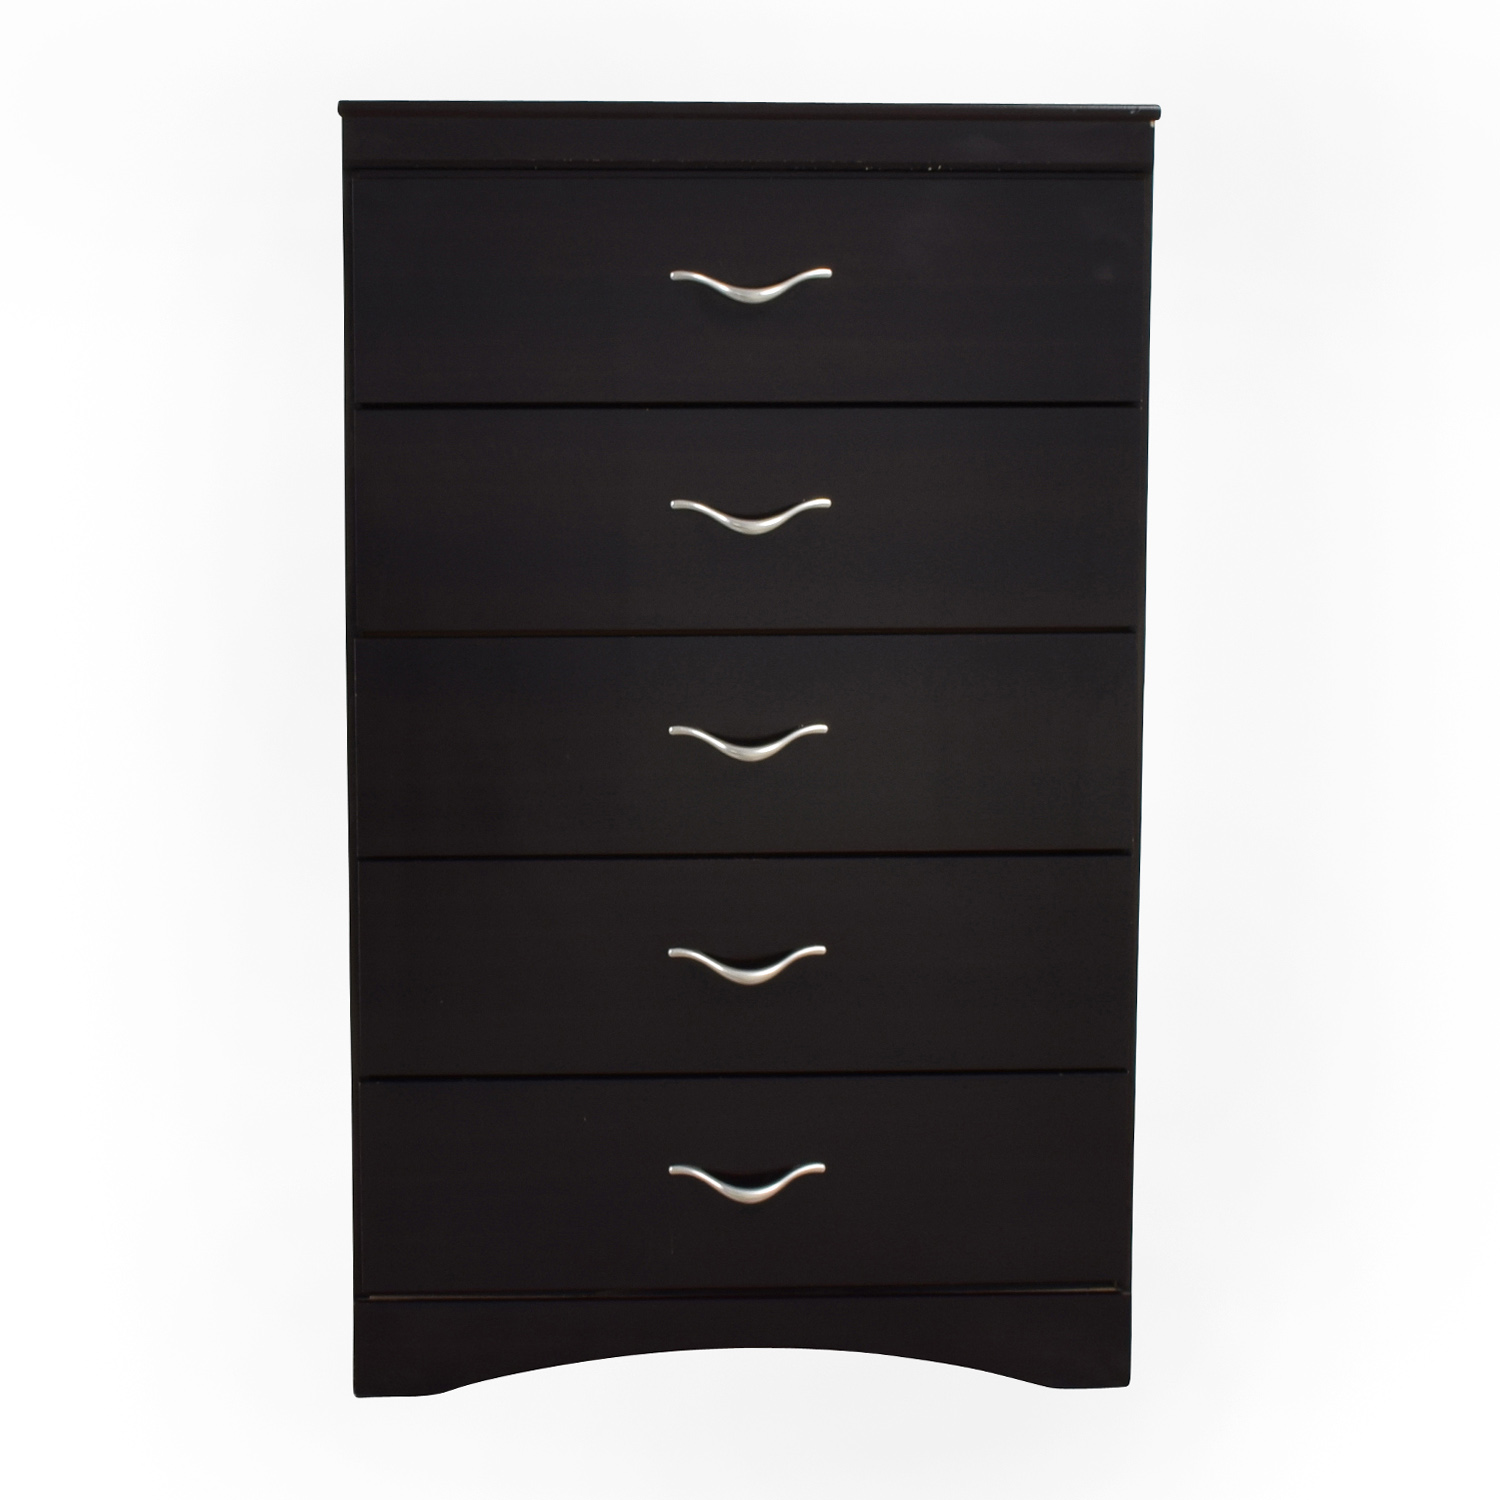 Bobs Furniture Bobs Furniture Black Five Drawer Wooden Chest dimensions